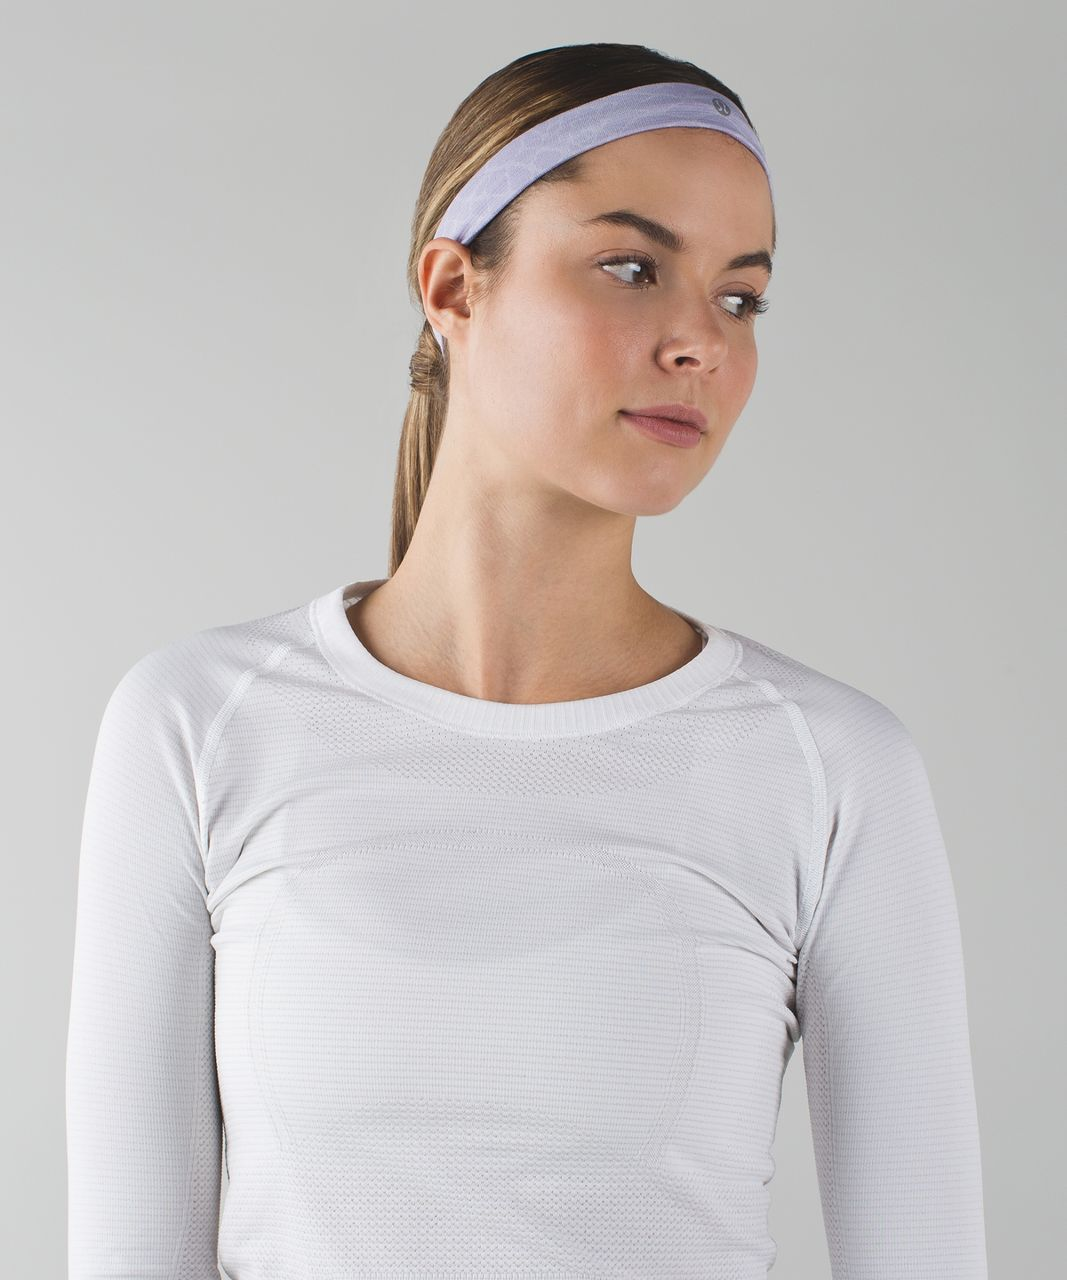 Lululemon Cardio Cross Trainer Headband - Heathered Lilac